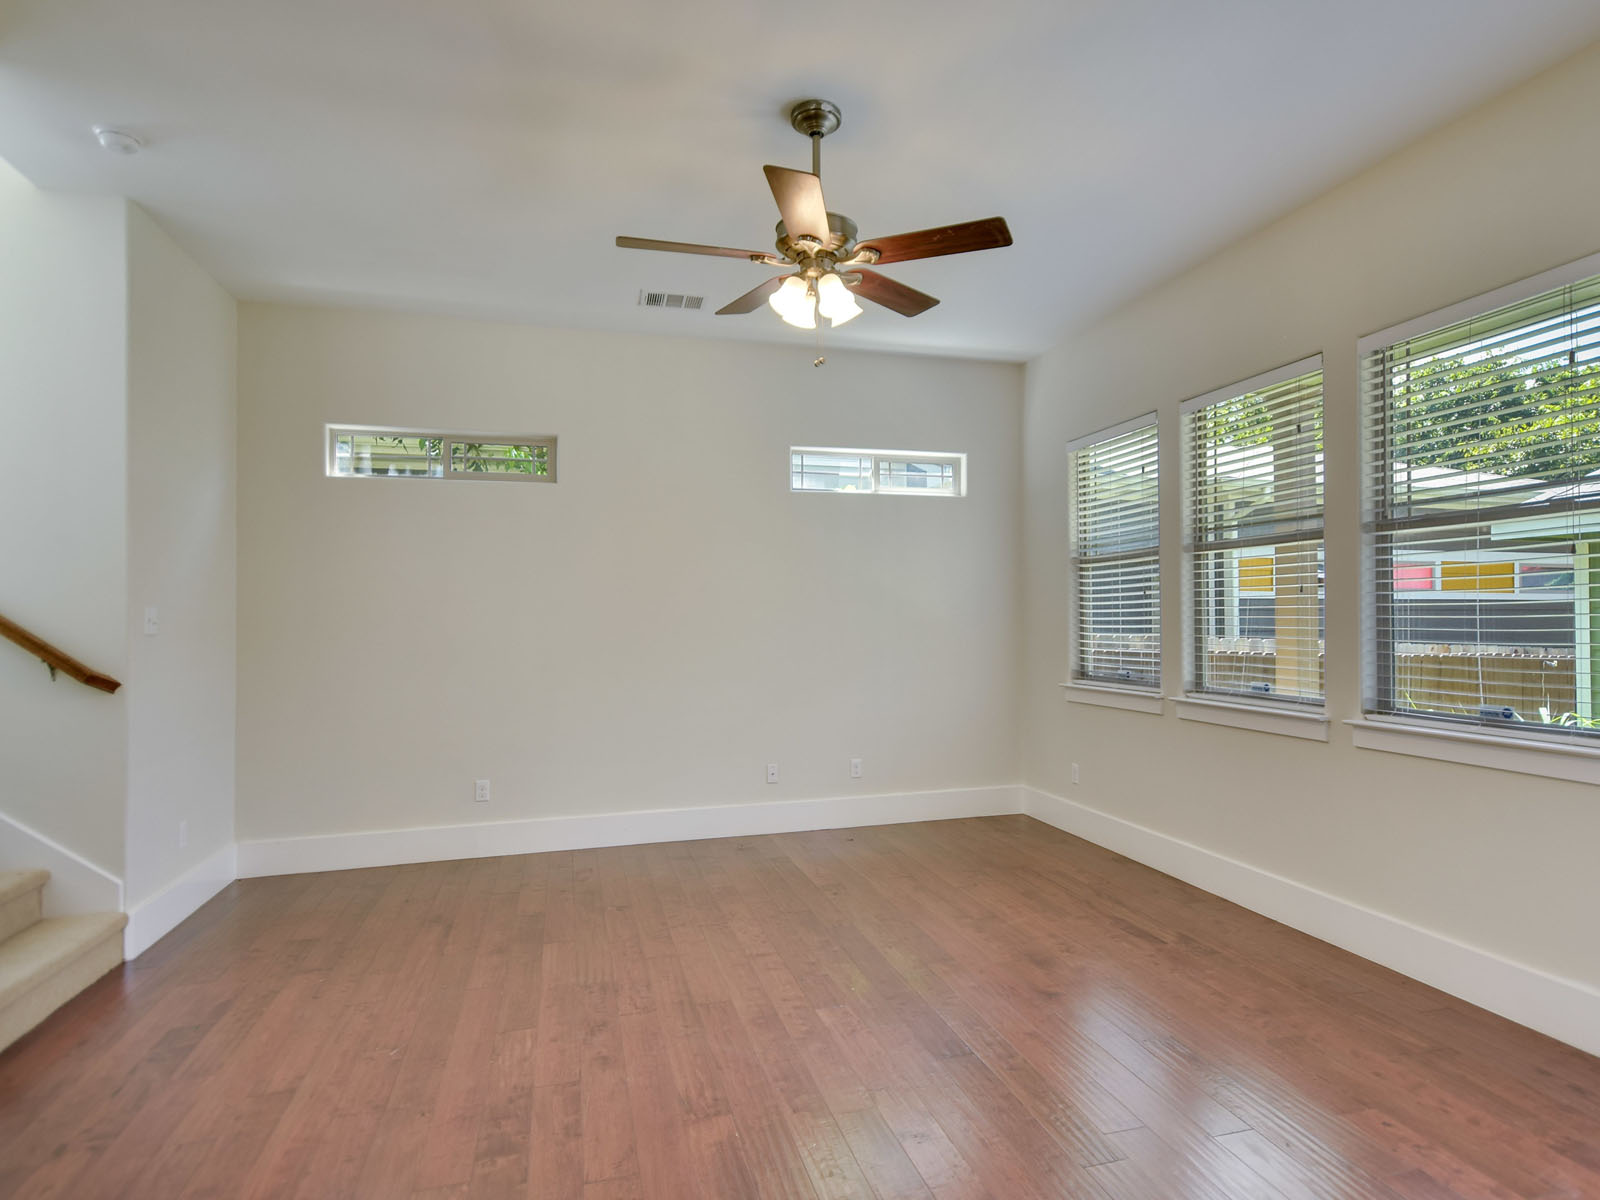 Additional photo for property listing at 1007 Taulbee Ln 1007B, Austin  Austin, Texas 78757 Estados Unidos